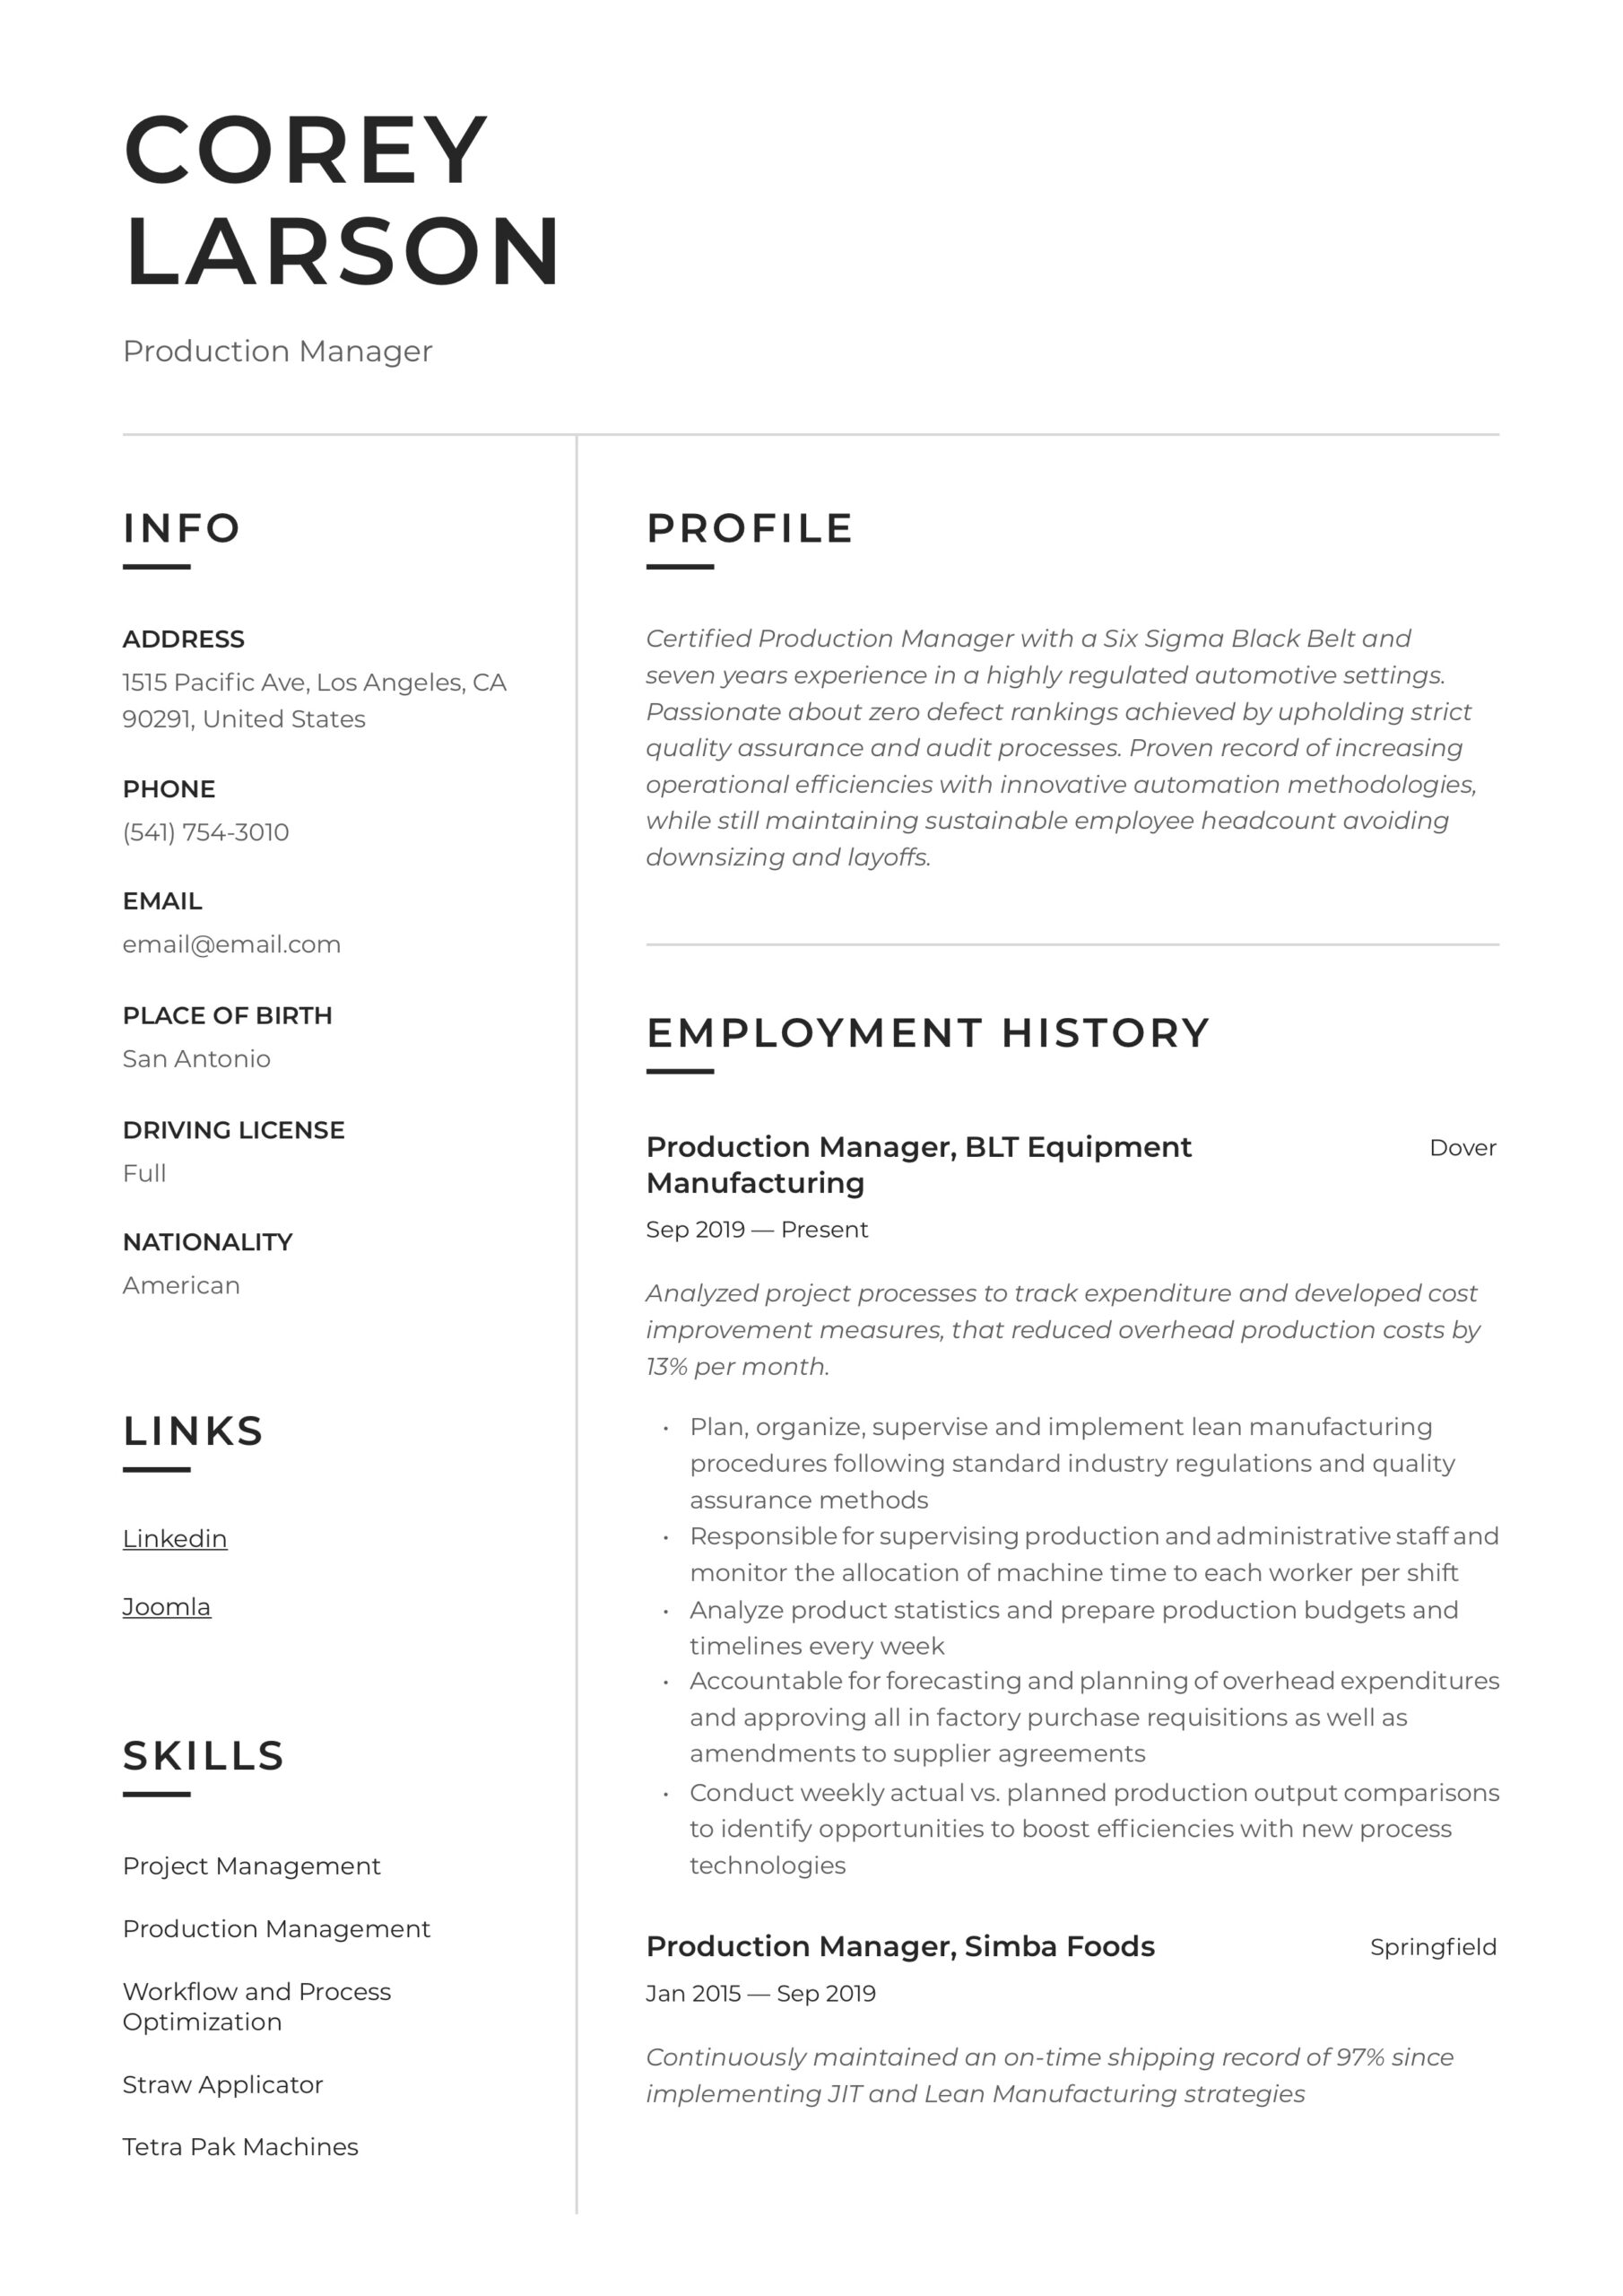 production manager resume writing guide templates officer sample social work words best Resume Production Officer Resume Sample